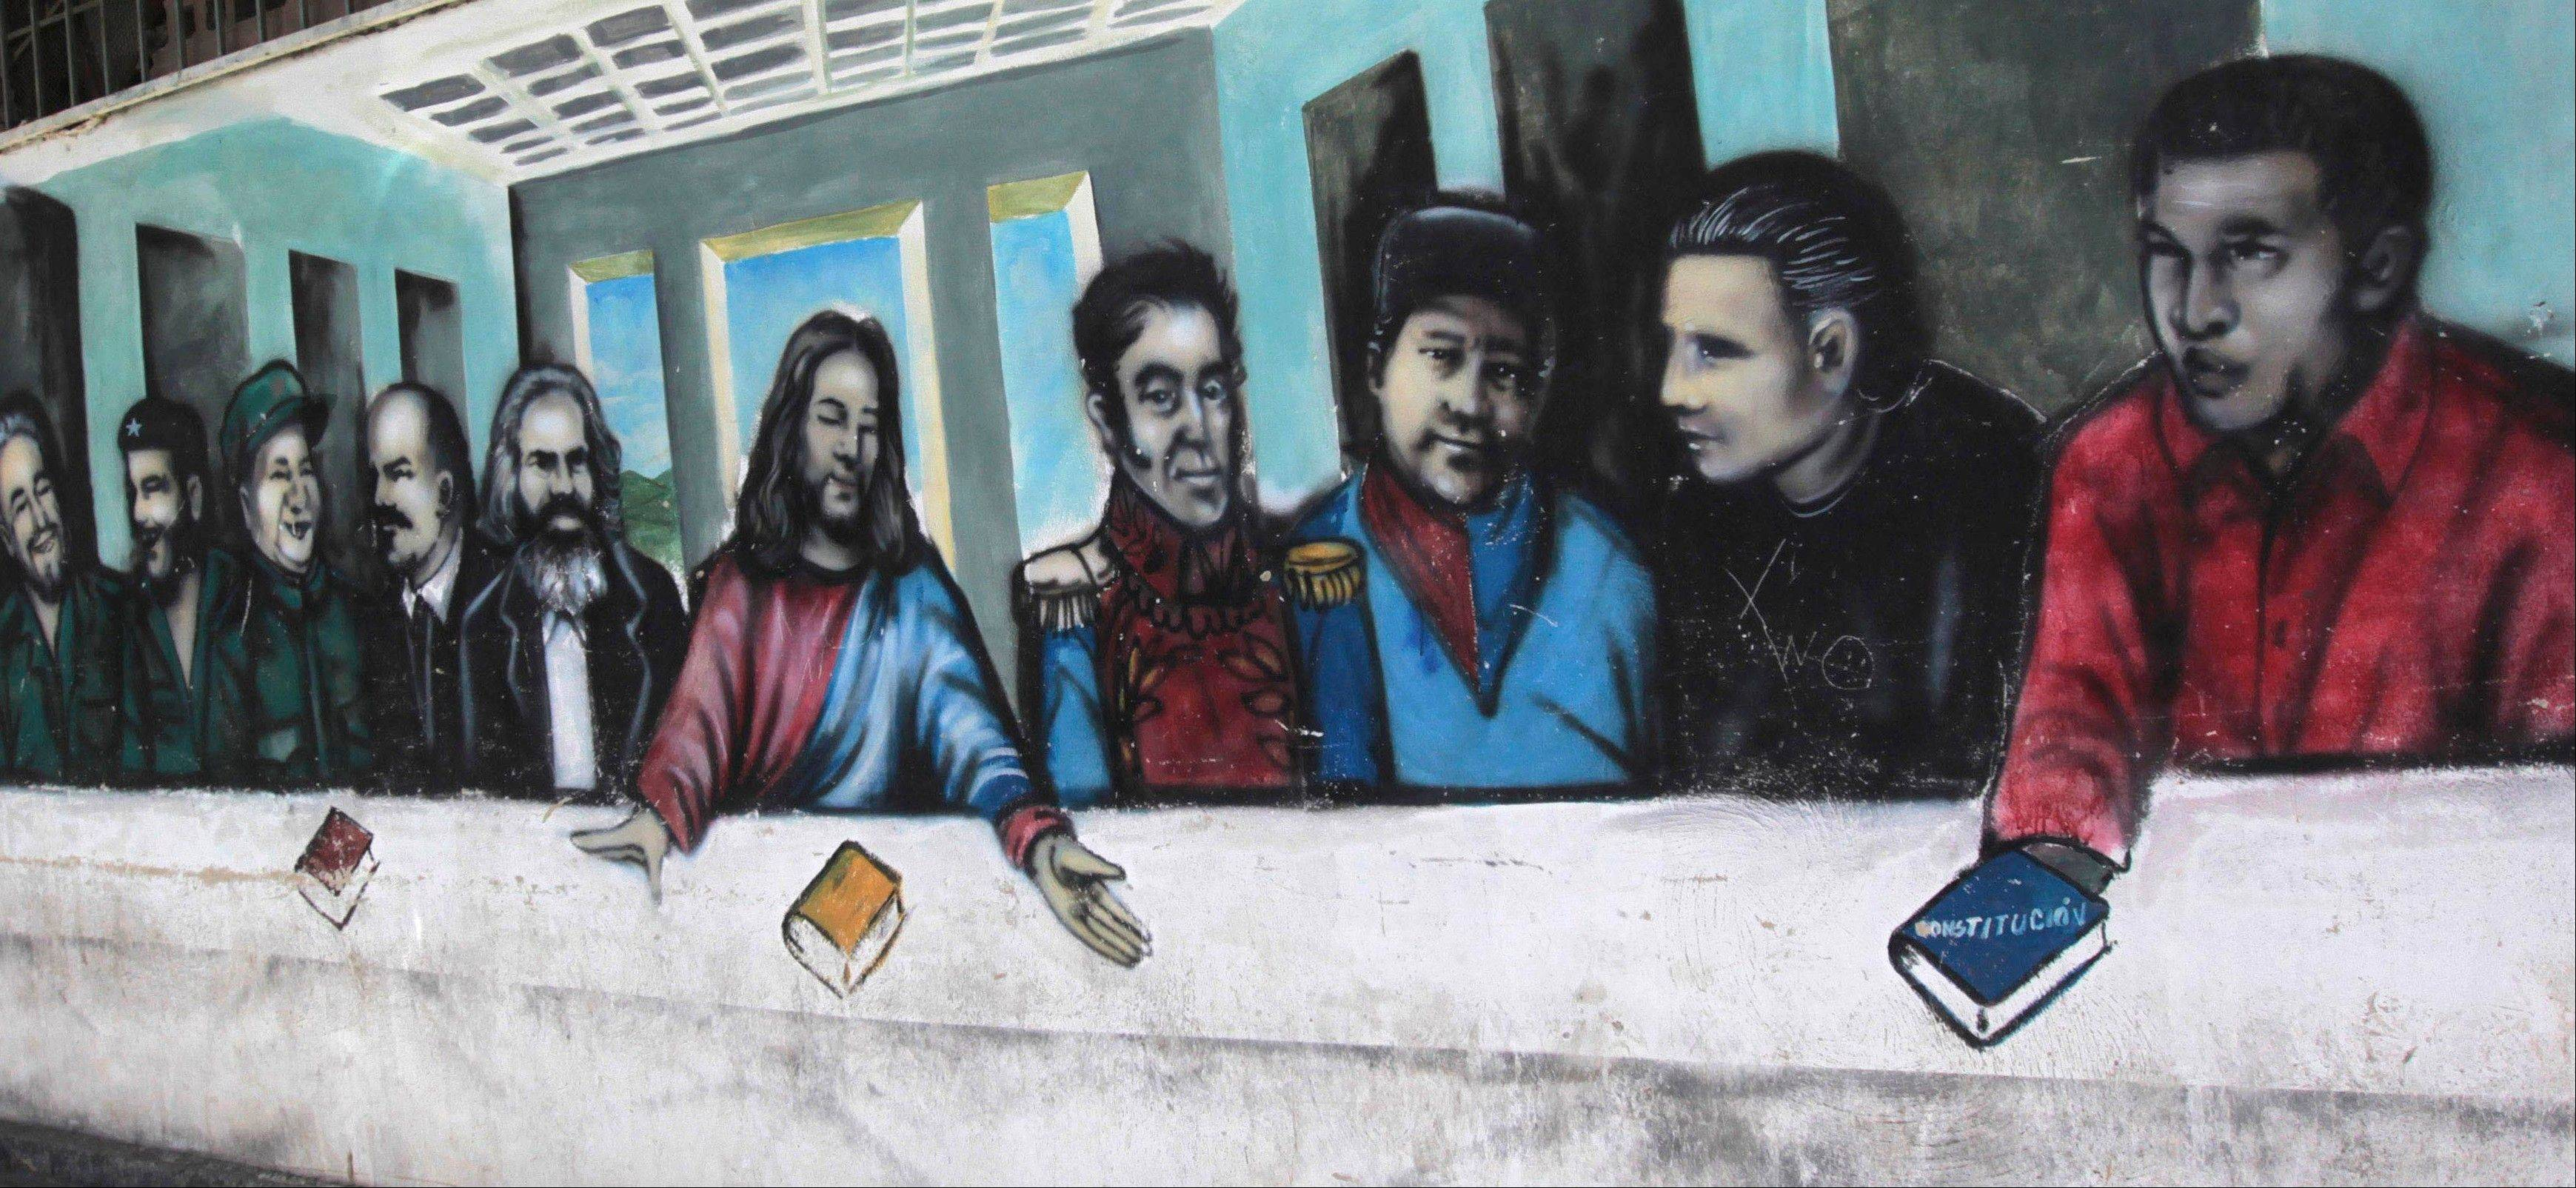 Associated Press/March 5, 2012A mural imitating the religious painting The Last Supper covers a wall of a popular housing complex, showing from left to right, Fidel Castro, Ernesto 'Che' Guevara, Mao Tse-tung, Vladimir Lenin, Karl Marx, Jesus Christ, Simon Bolivar, Venezuelan rebel fighters Alexis Gonzalez and Fabricio Ojeda and Venezuela's President Hugo Chavez in Caracas, Venezuela.